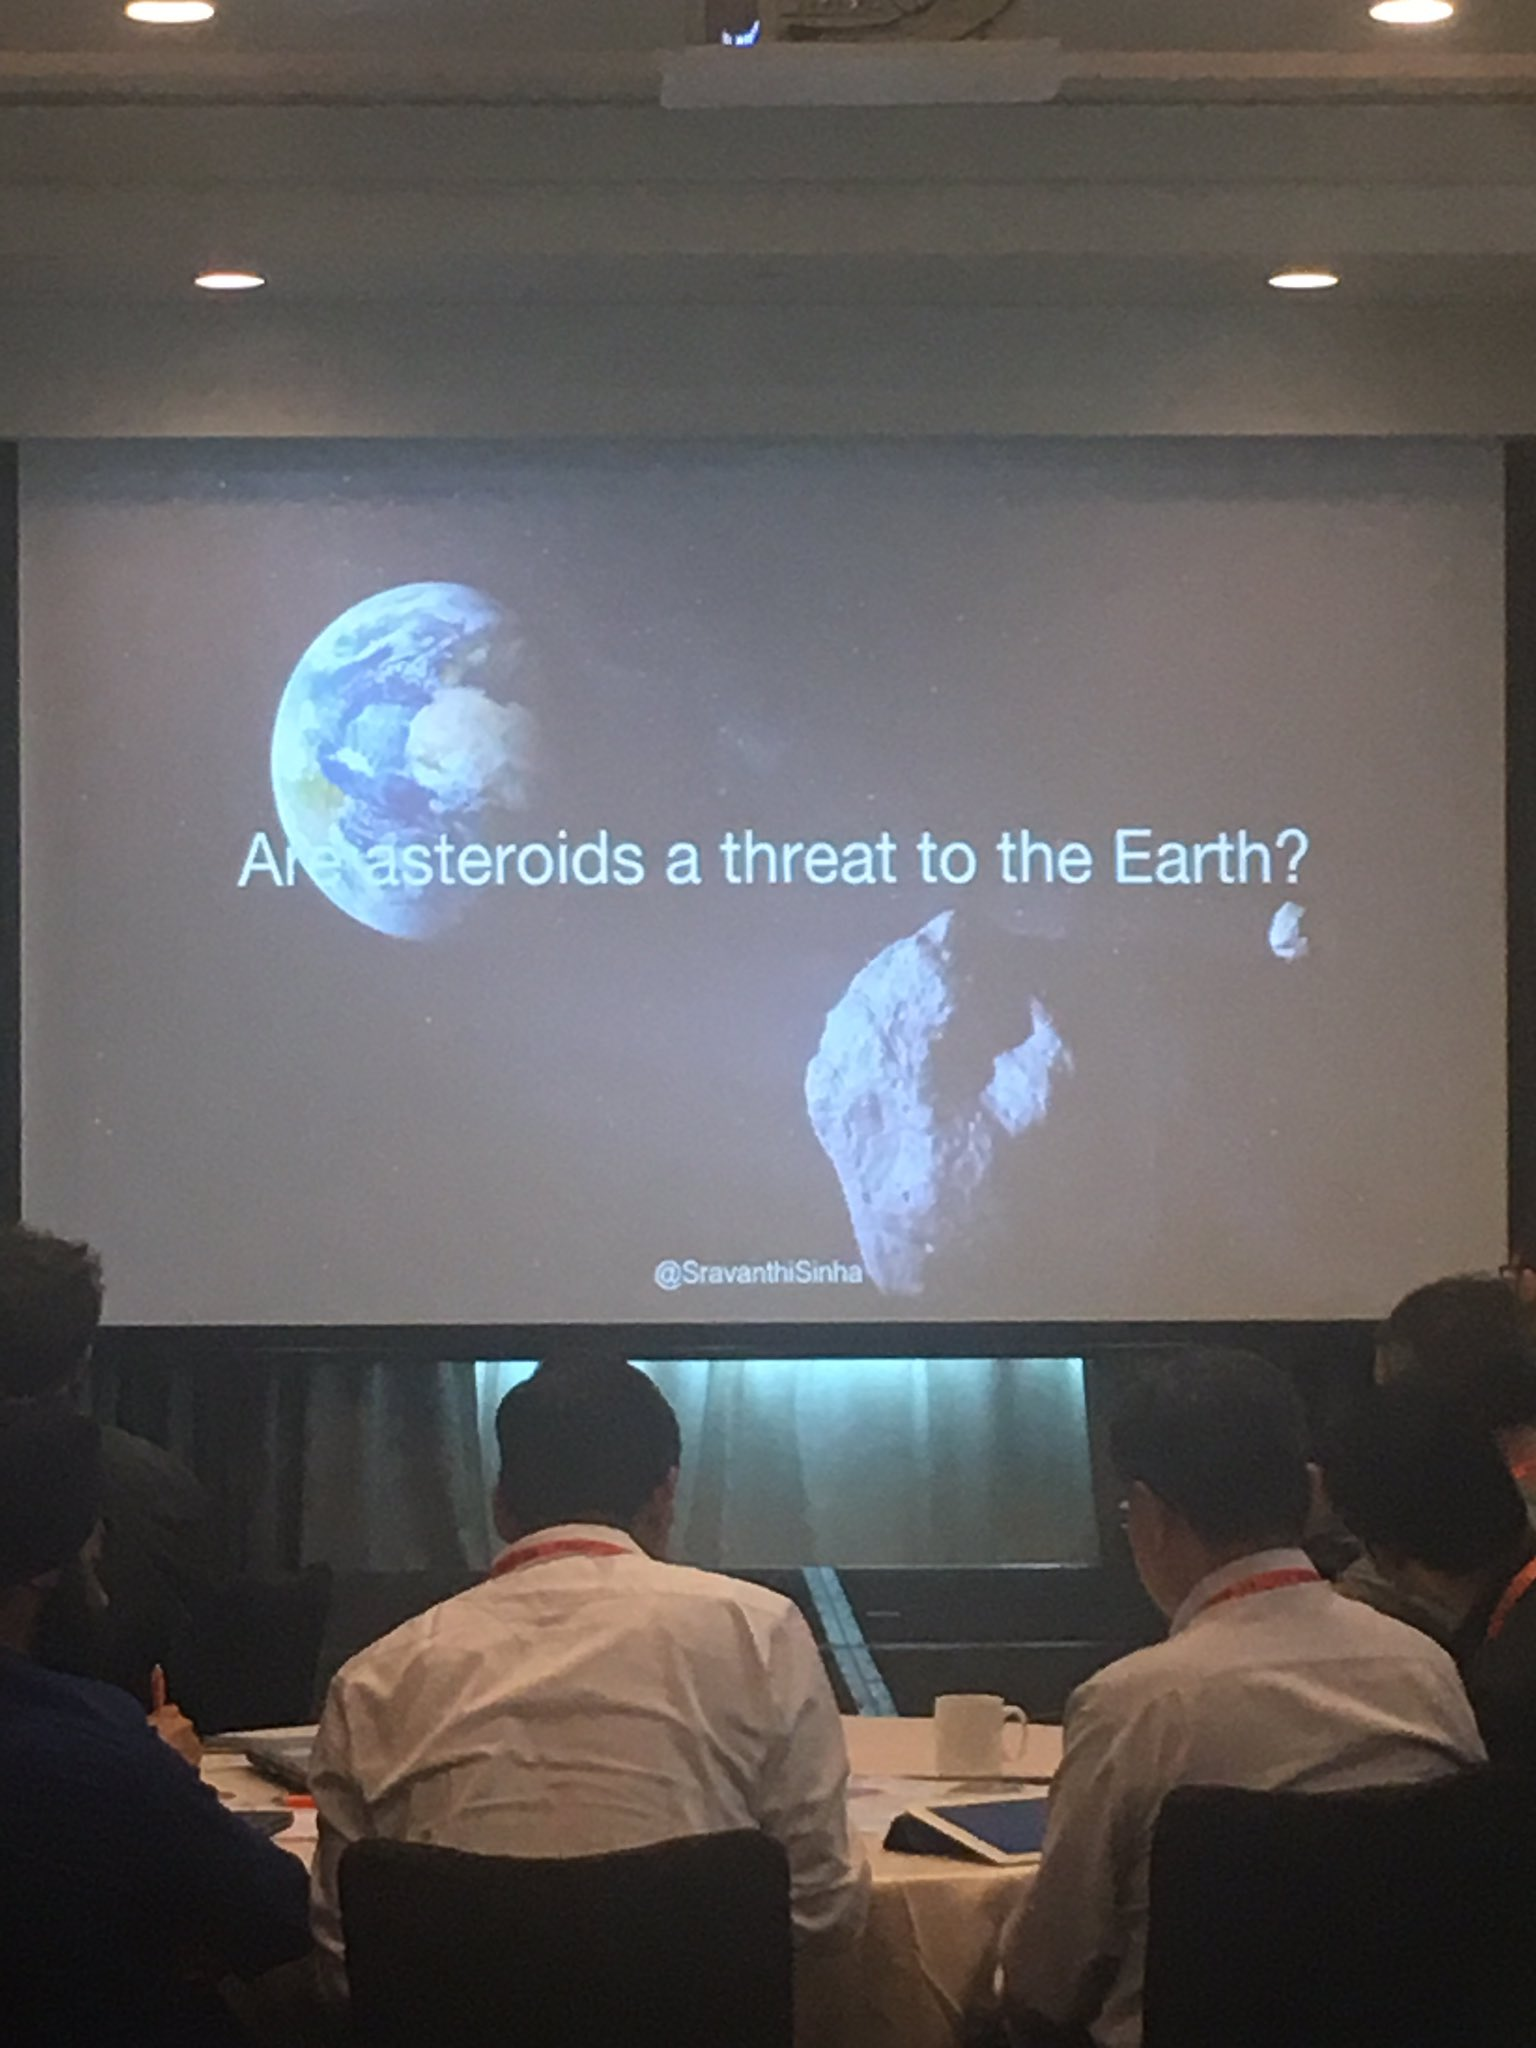 @SravanthiSinha presents on her time at the @NASA Frontier Development Lab! Are Asteroids a threat to earth? How can DL help? #reworkdl https://t.co/IBAyCkR2Ak